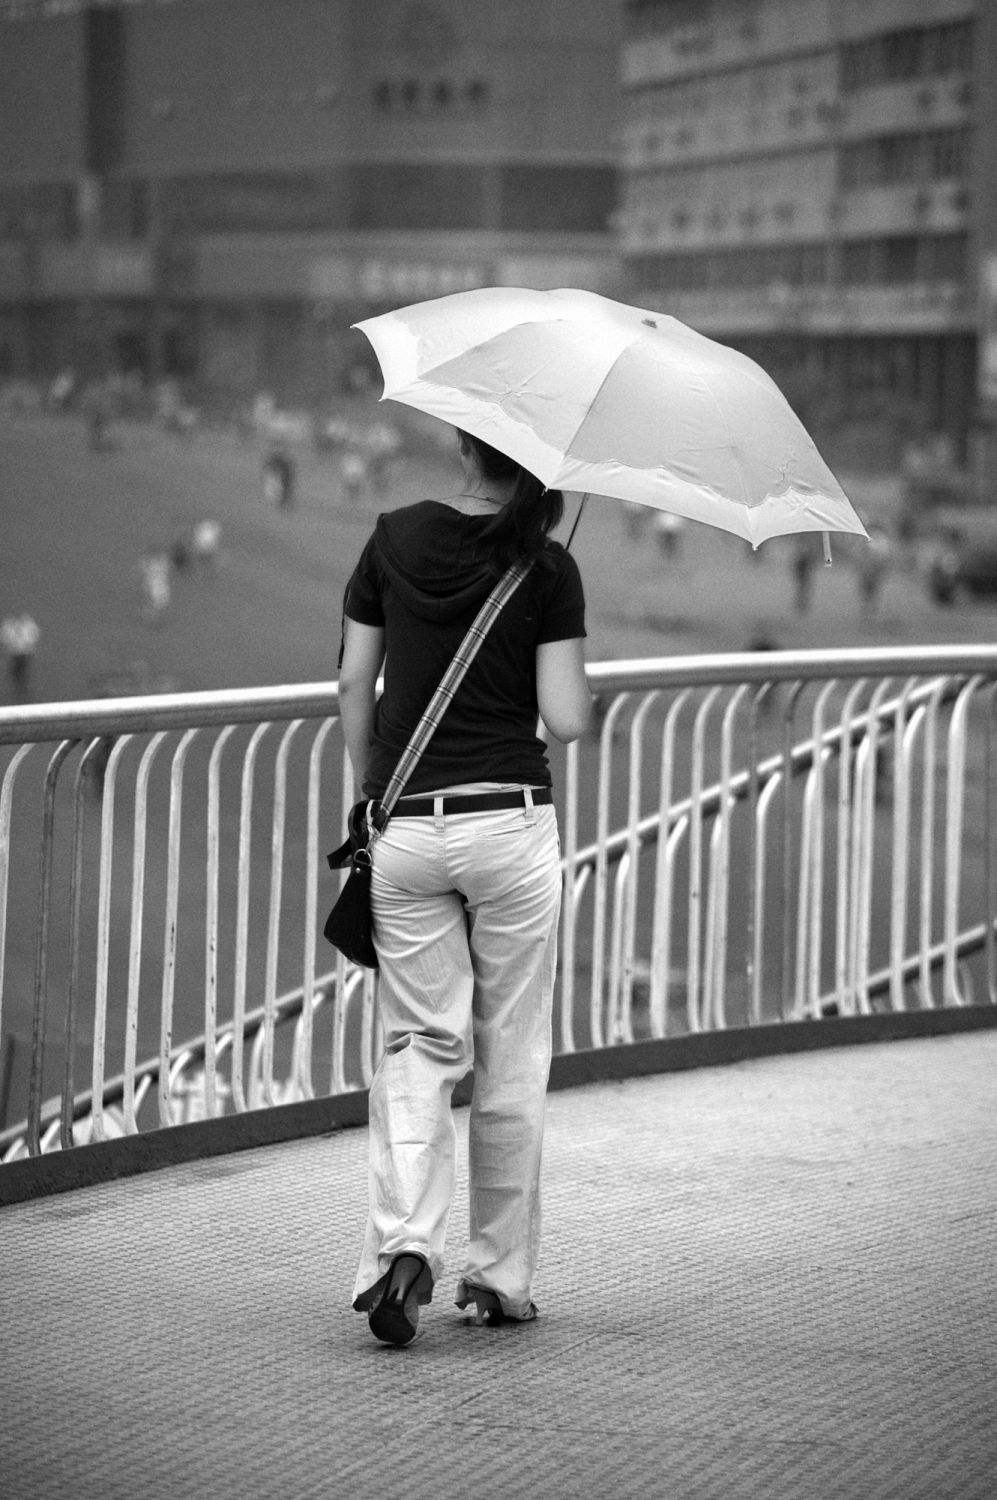 Chine - Under my umbrella